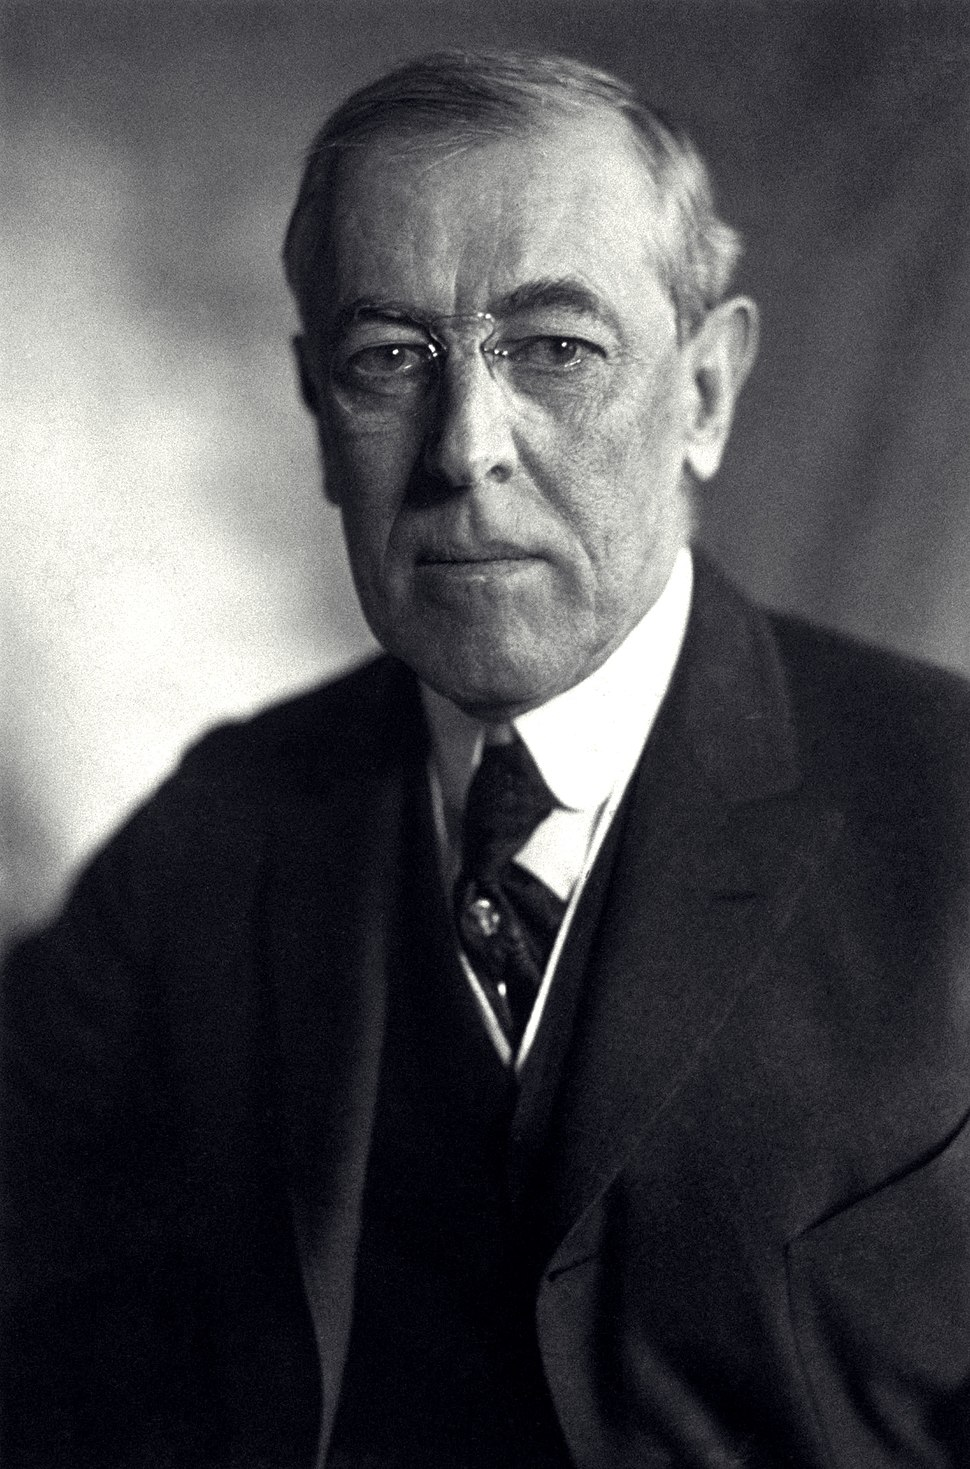 Thomas Woodrow Wilson, Harris %26 Ewing bw photo portrait, 1919